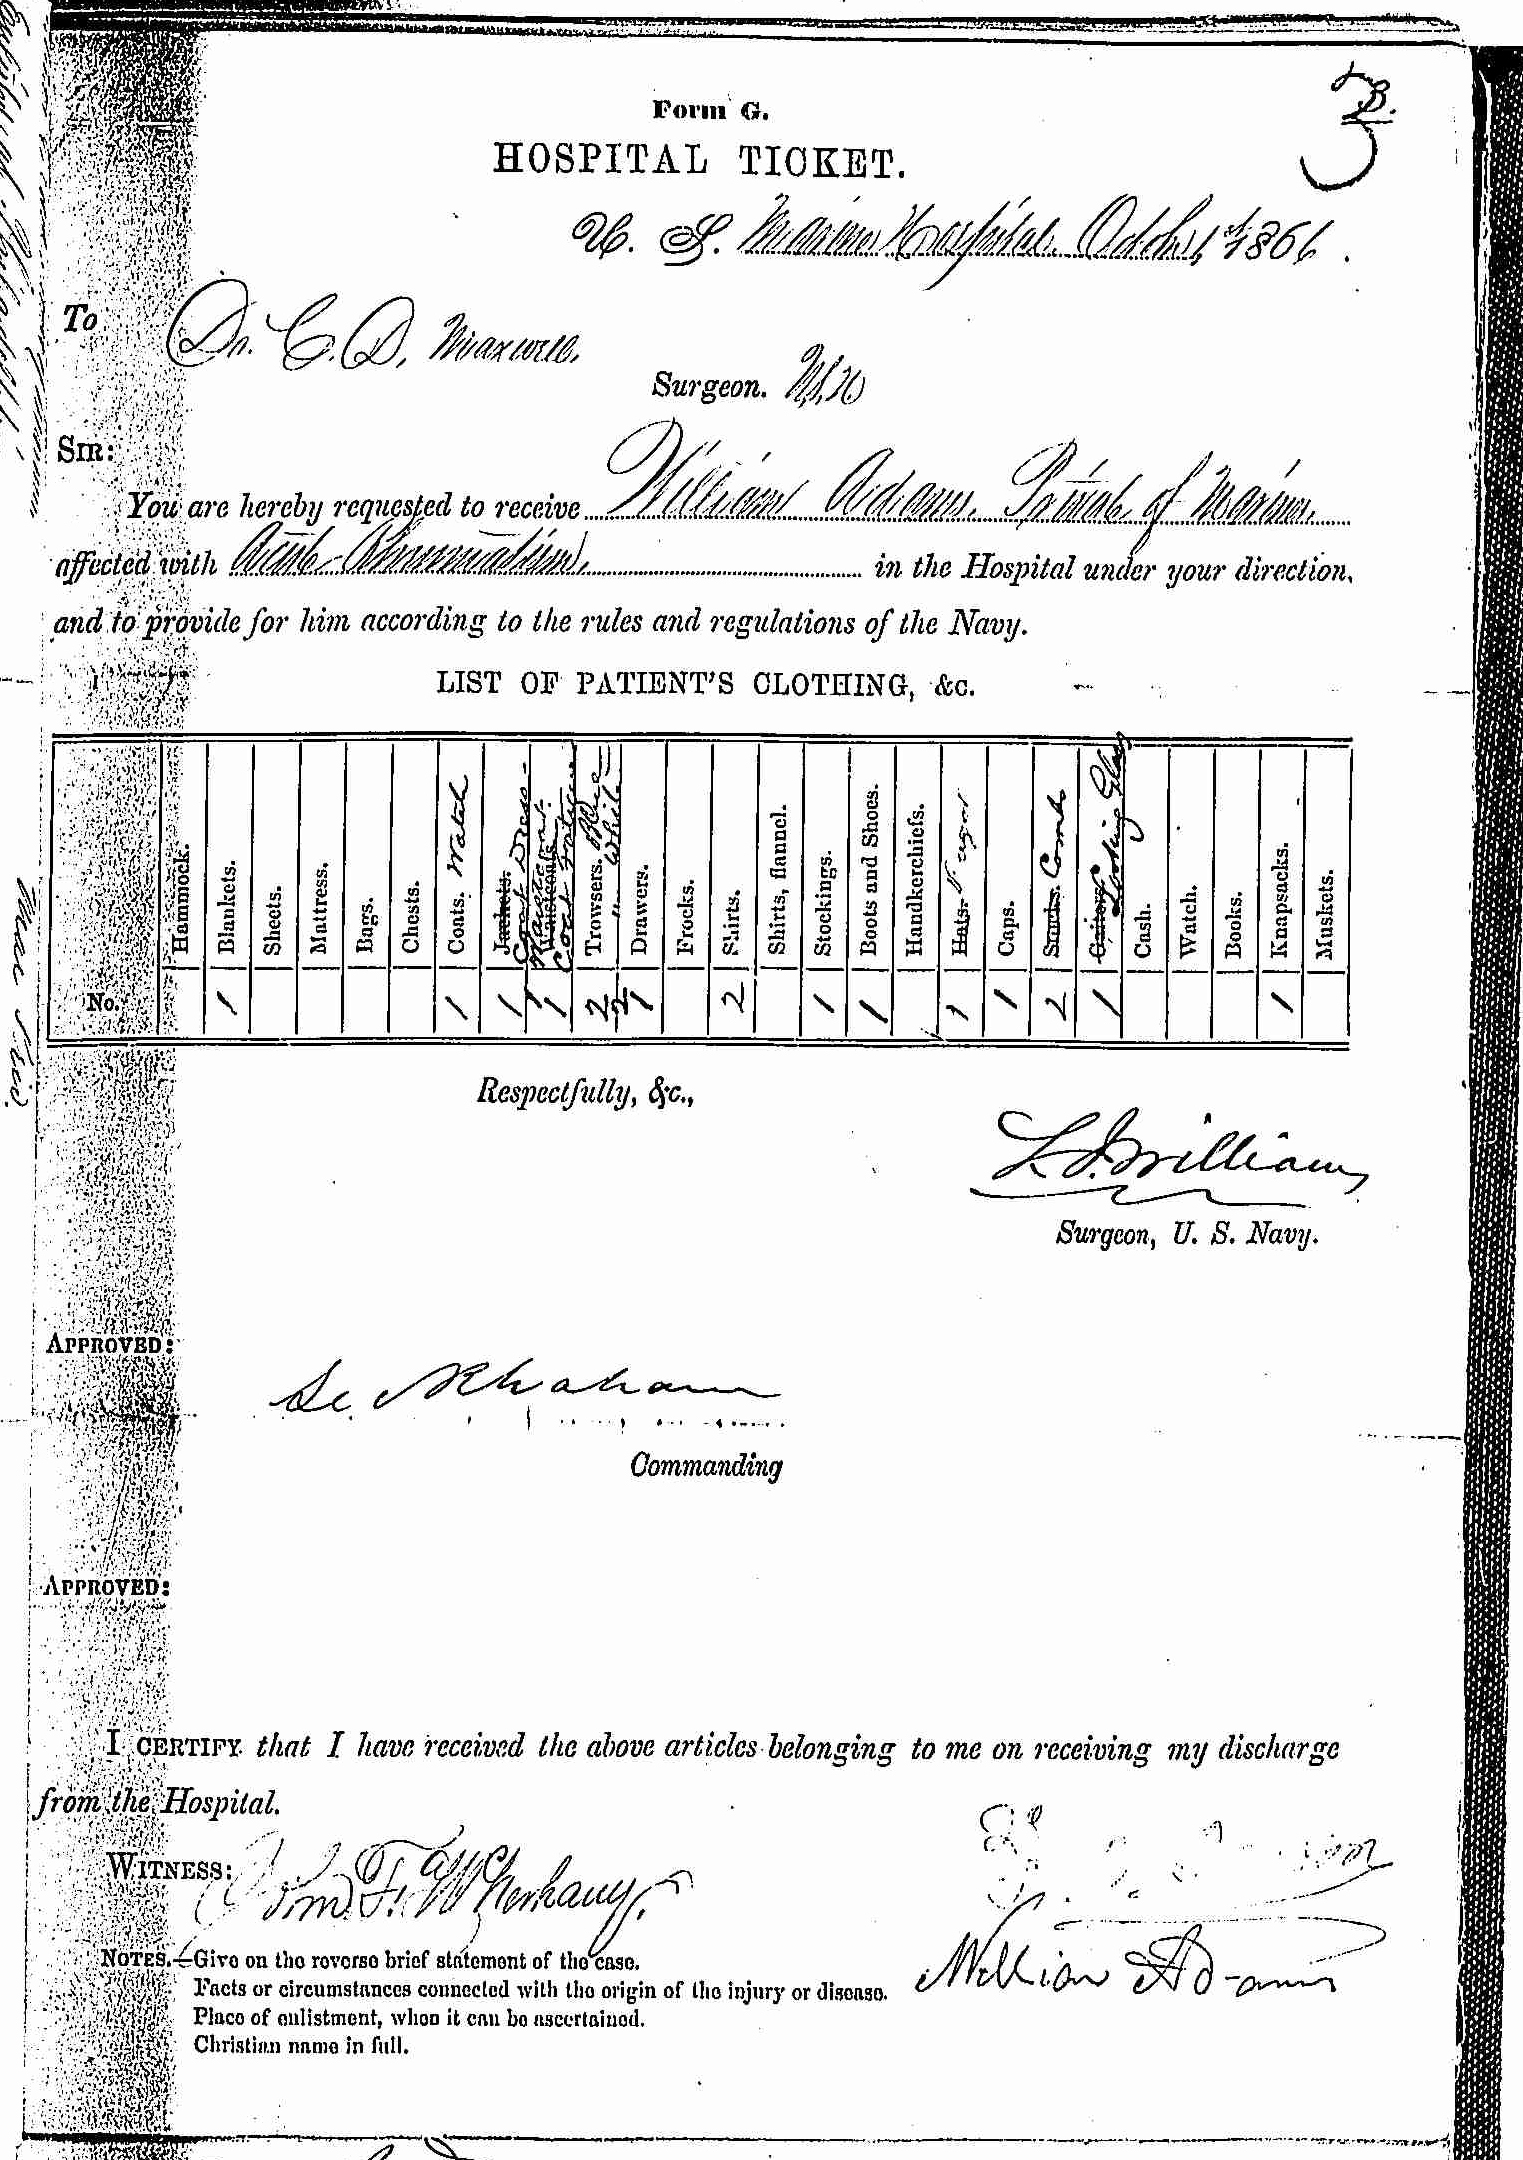 Entry for William Adams (page 1 of 2) in the log Hospital Tickets and Case Papers - Naval Hospital - Washington, D.C. - 1865-68